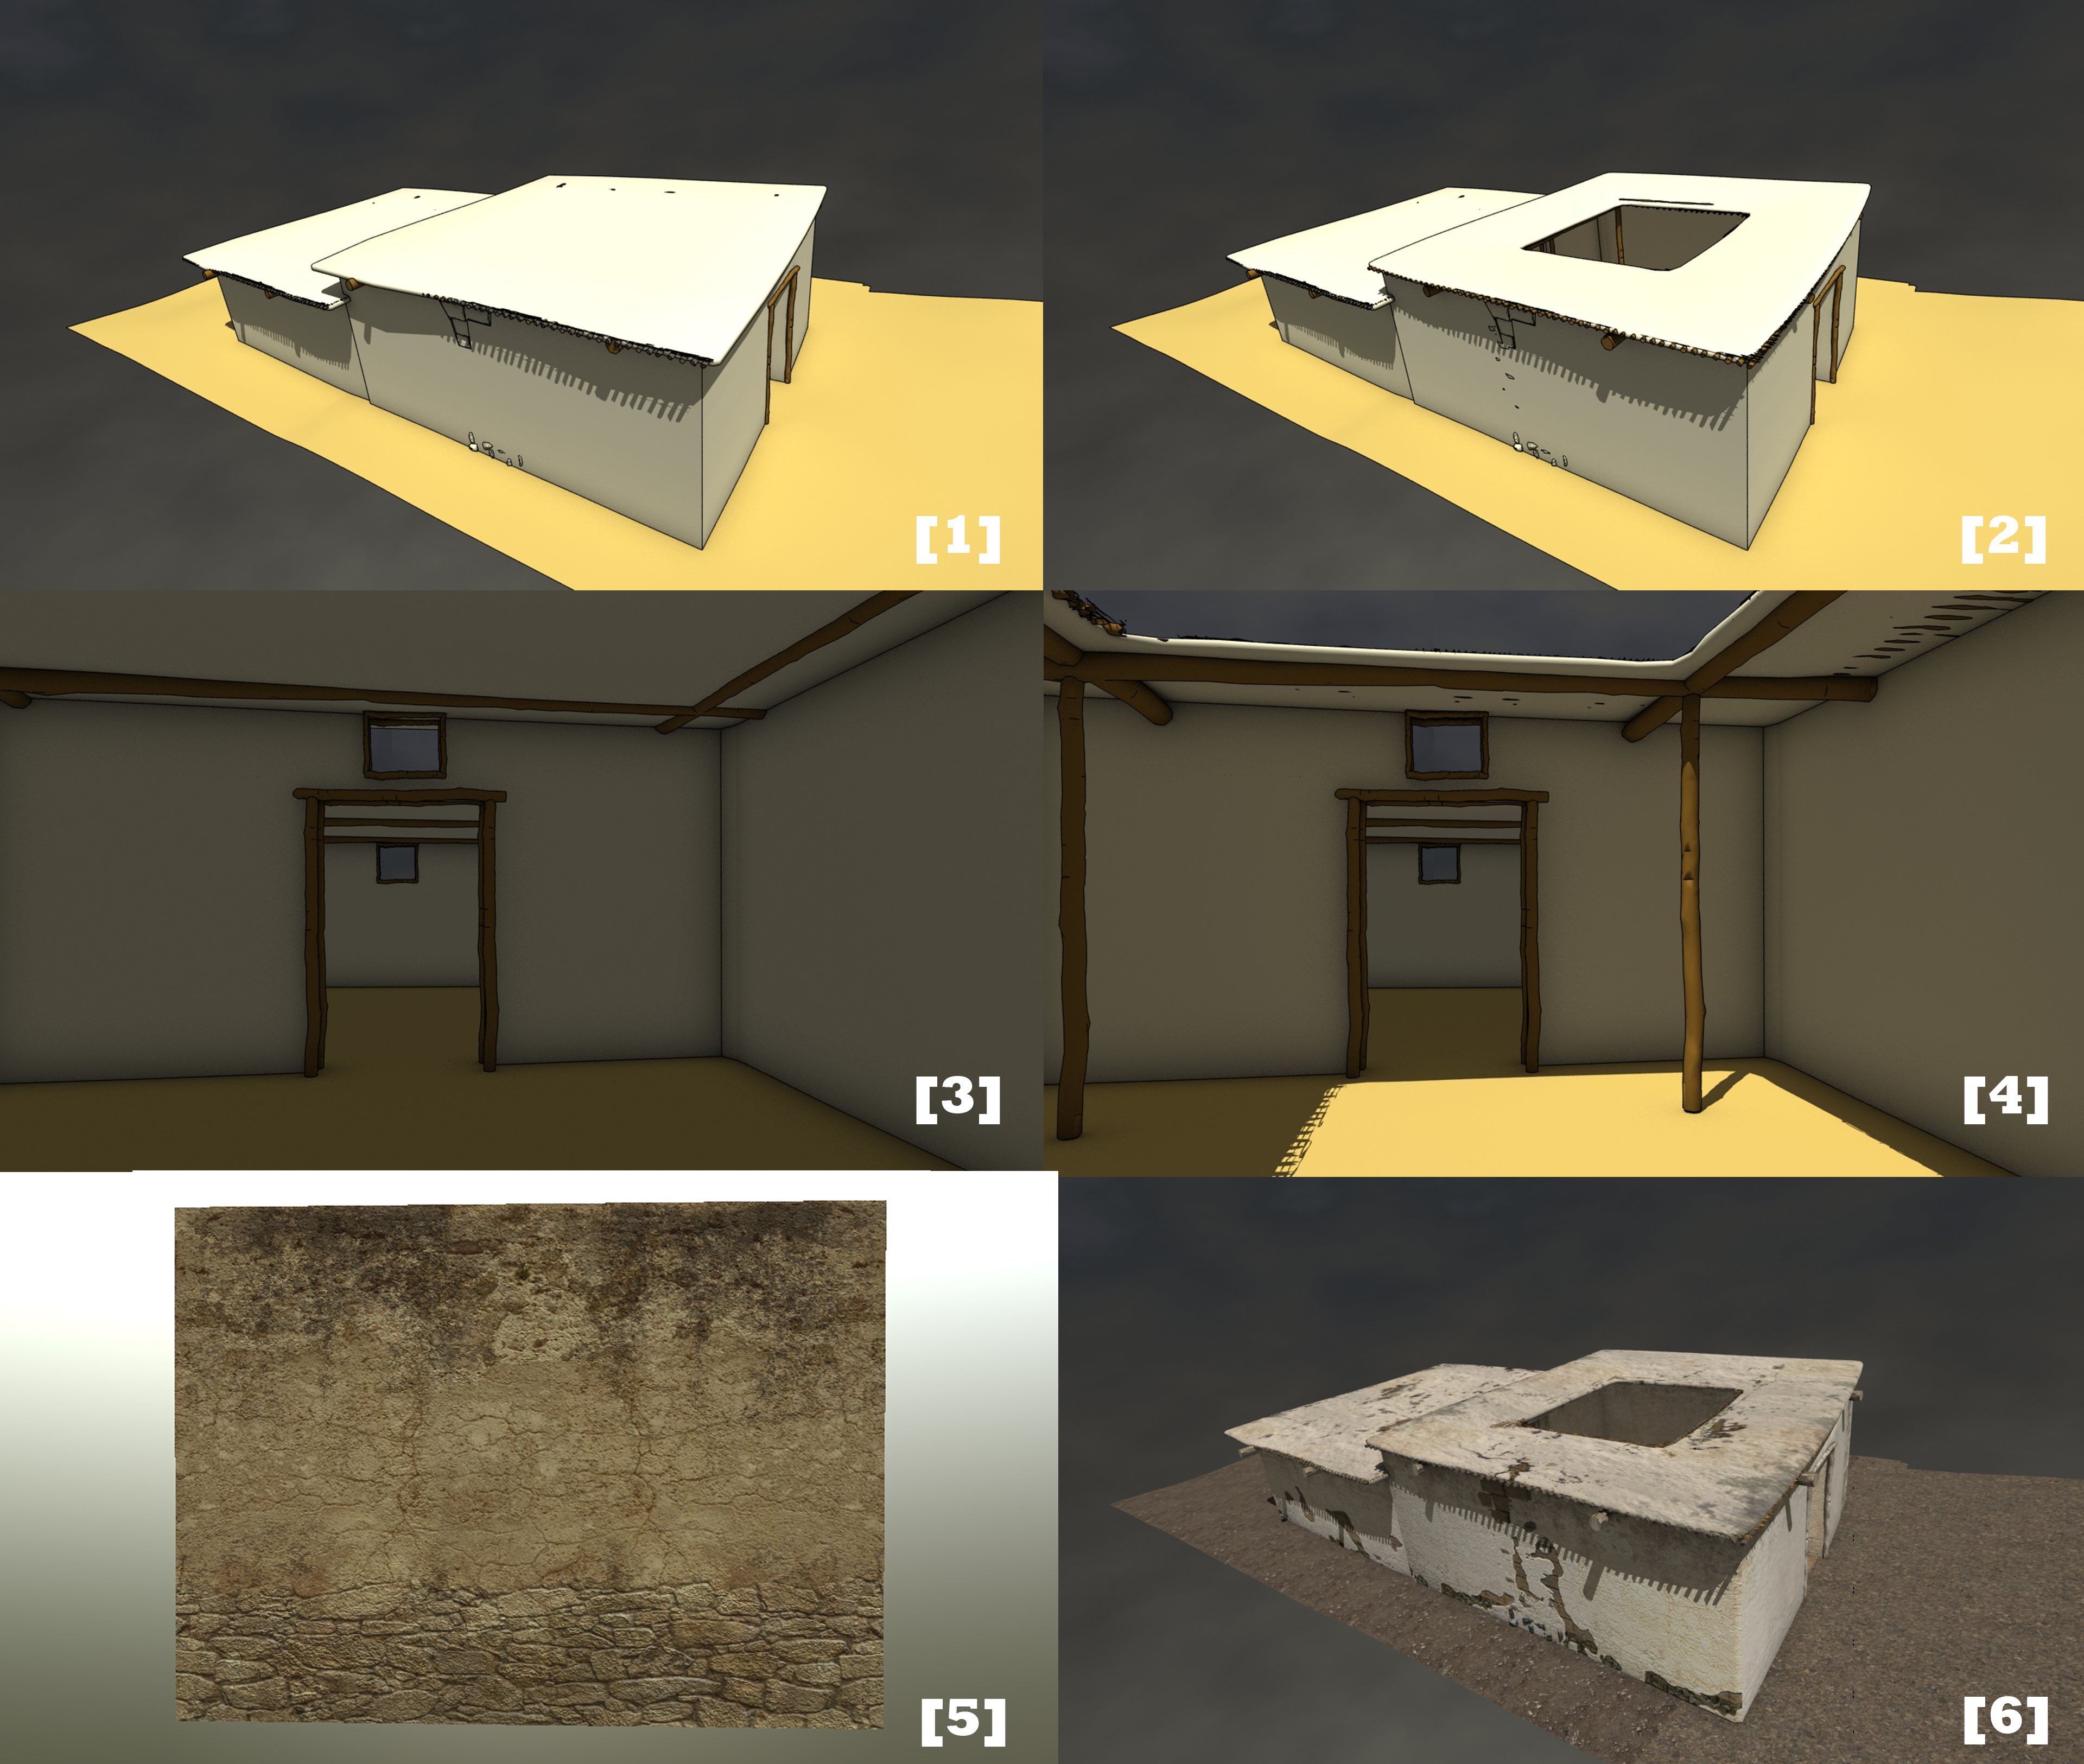 CAD model of an Early Bronze Age building and texture